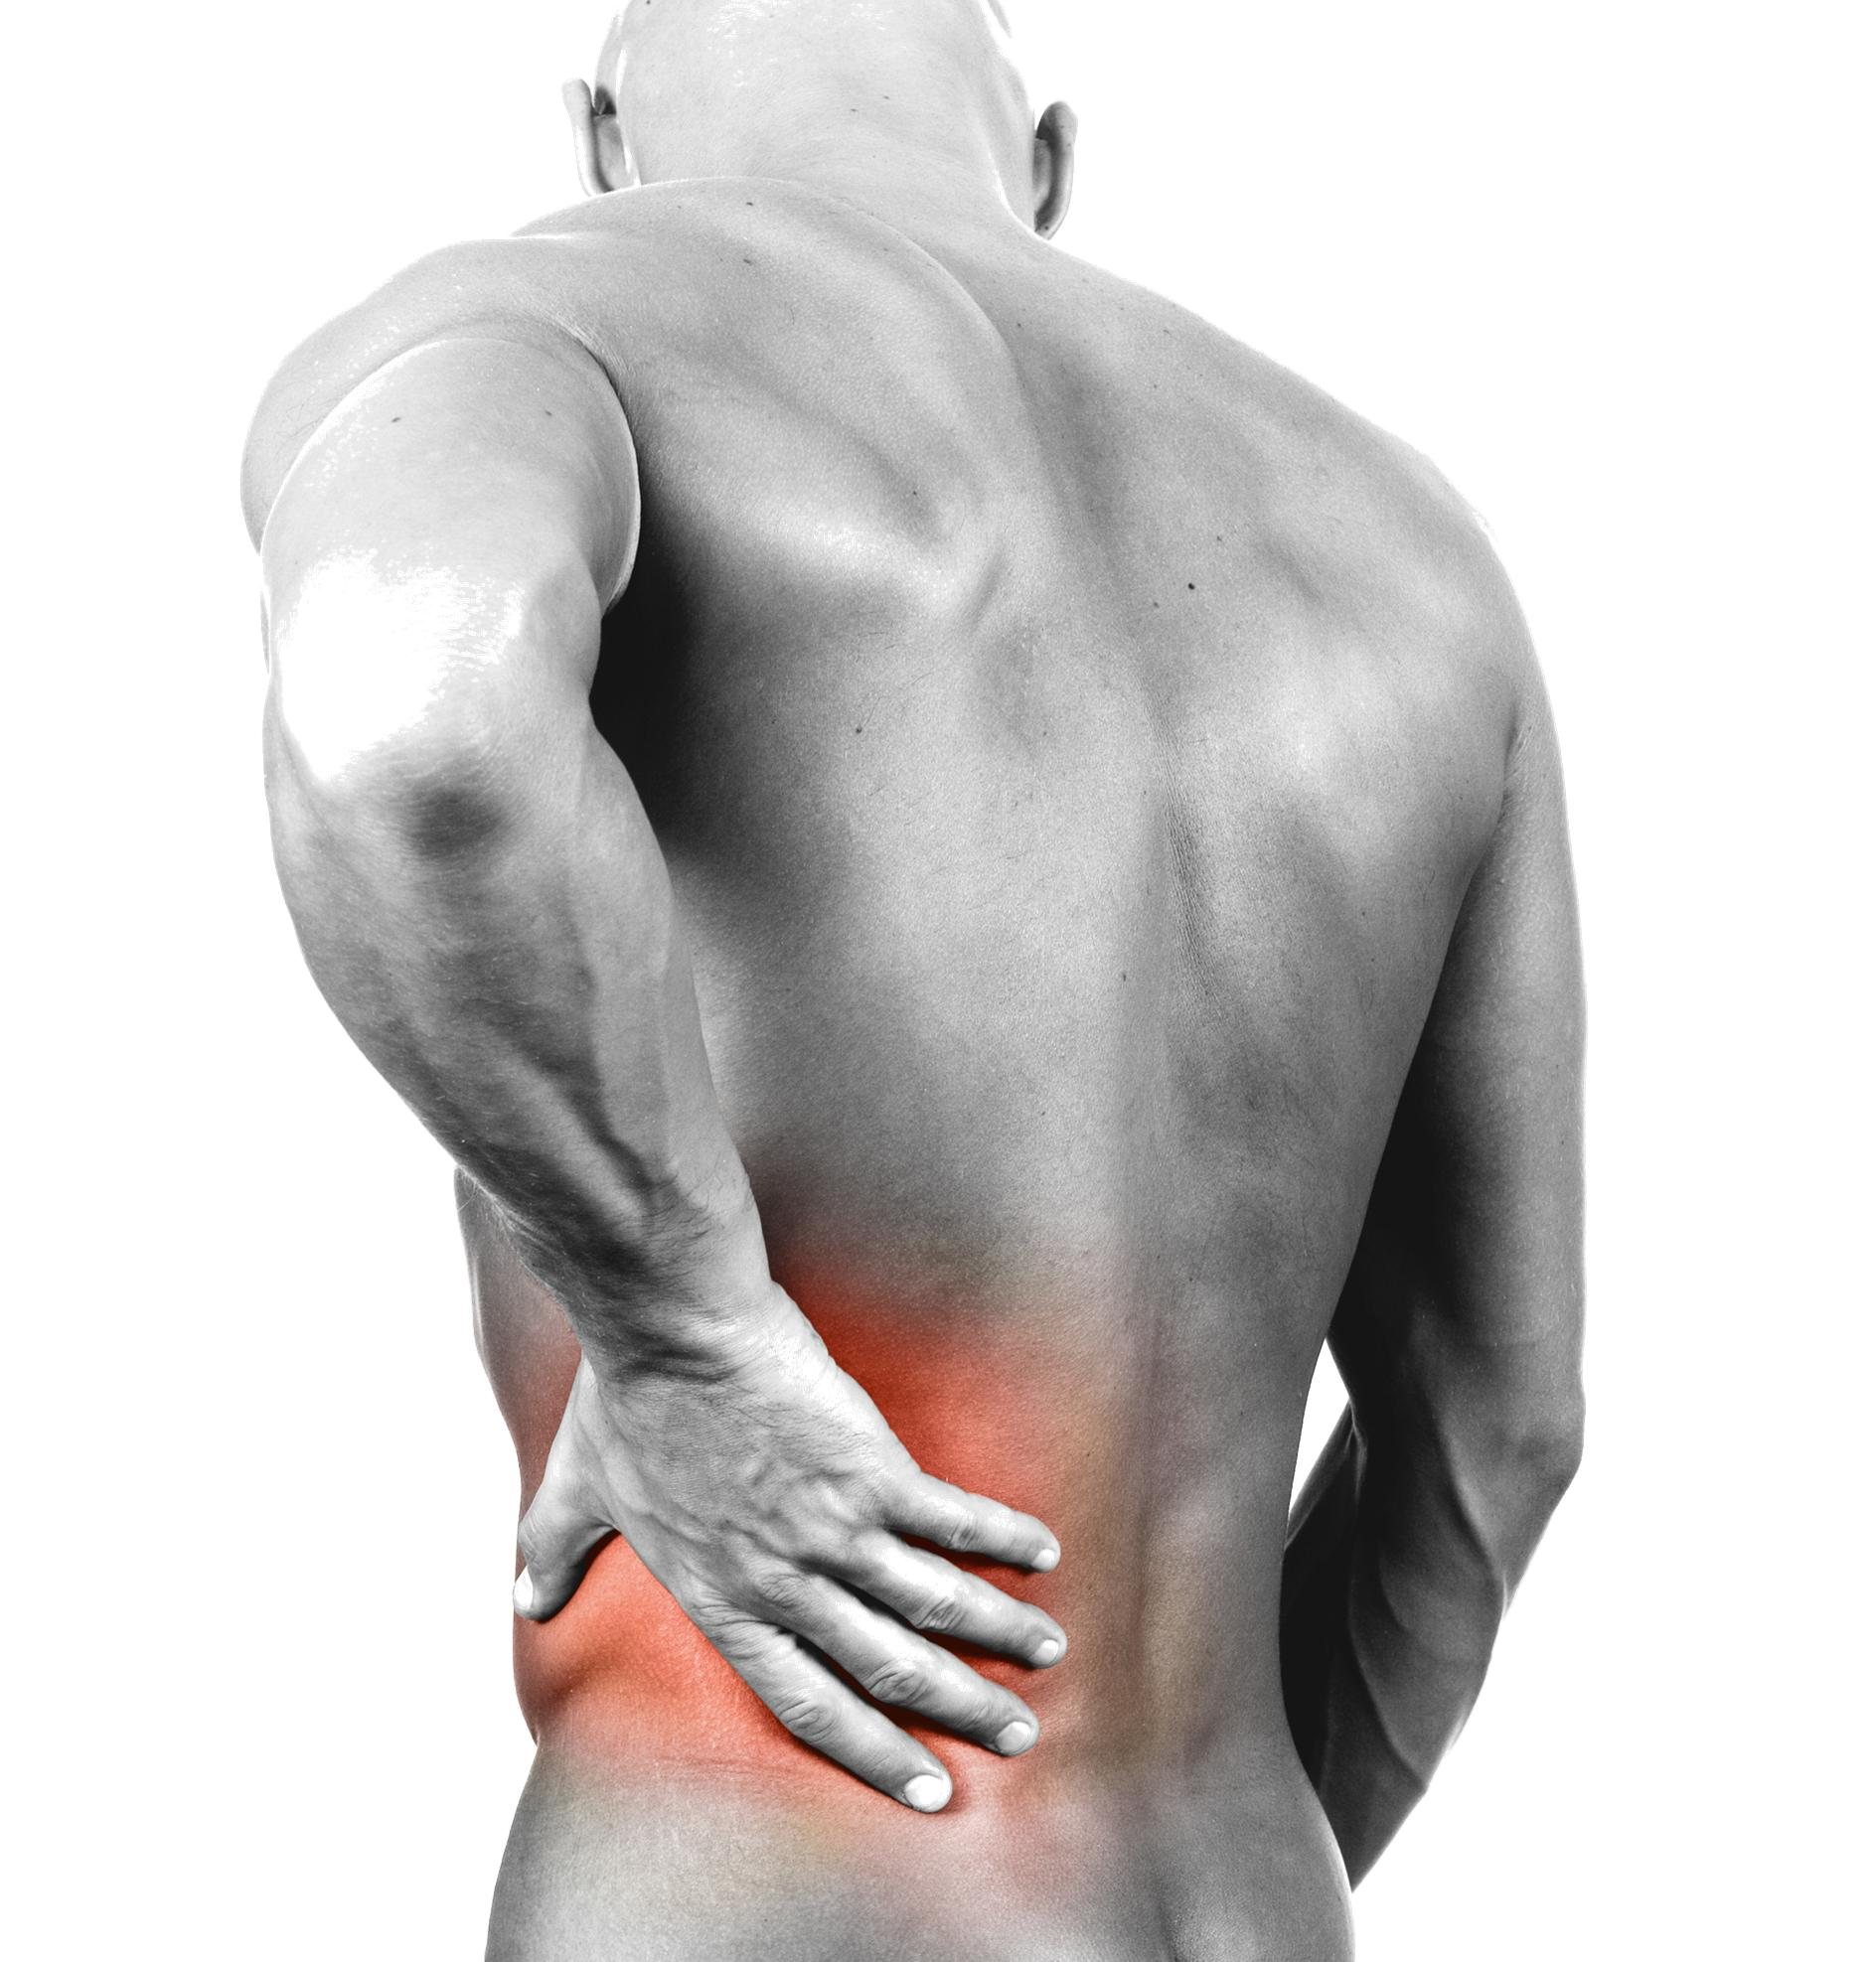 Your life has not been the same since you've been diagnosed with sciatica. But there is hope. Dr. Kuang at Performance for Life Chiropractic can have you back to your normal routine in no time!  Request an appointment  for quick and easy pain relief today!